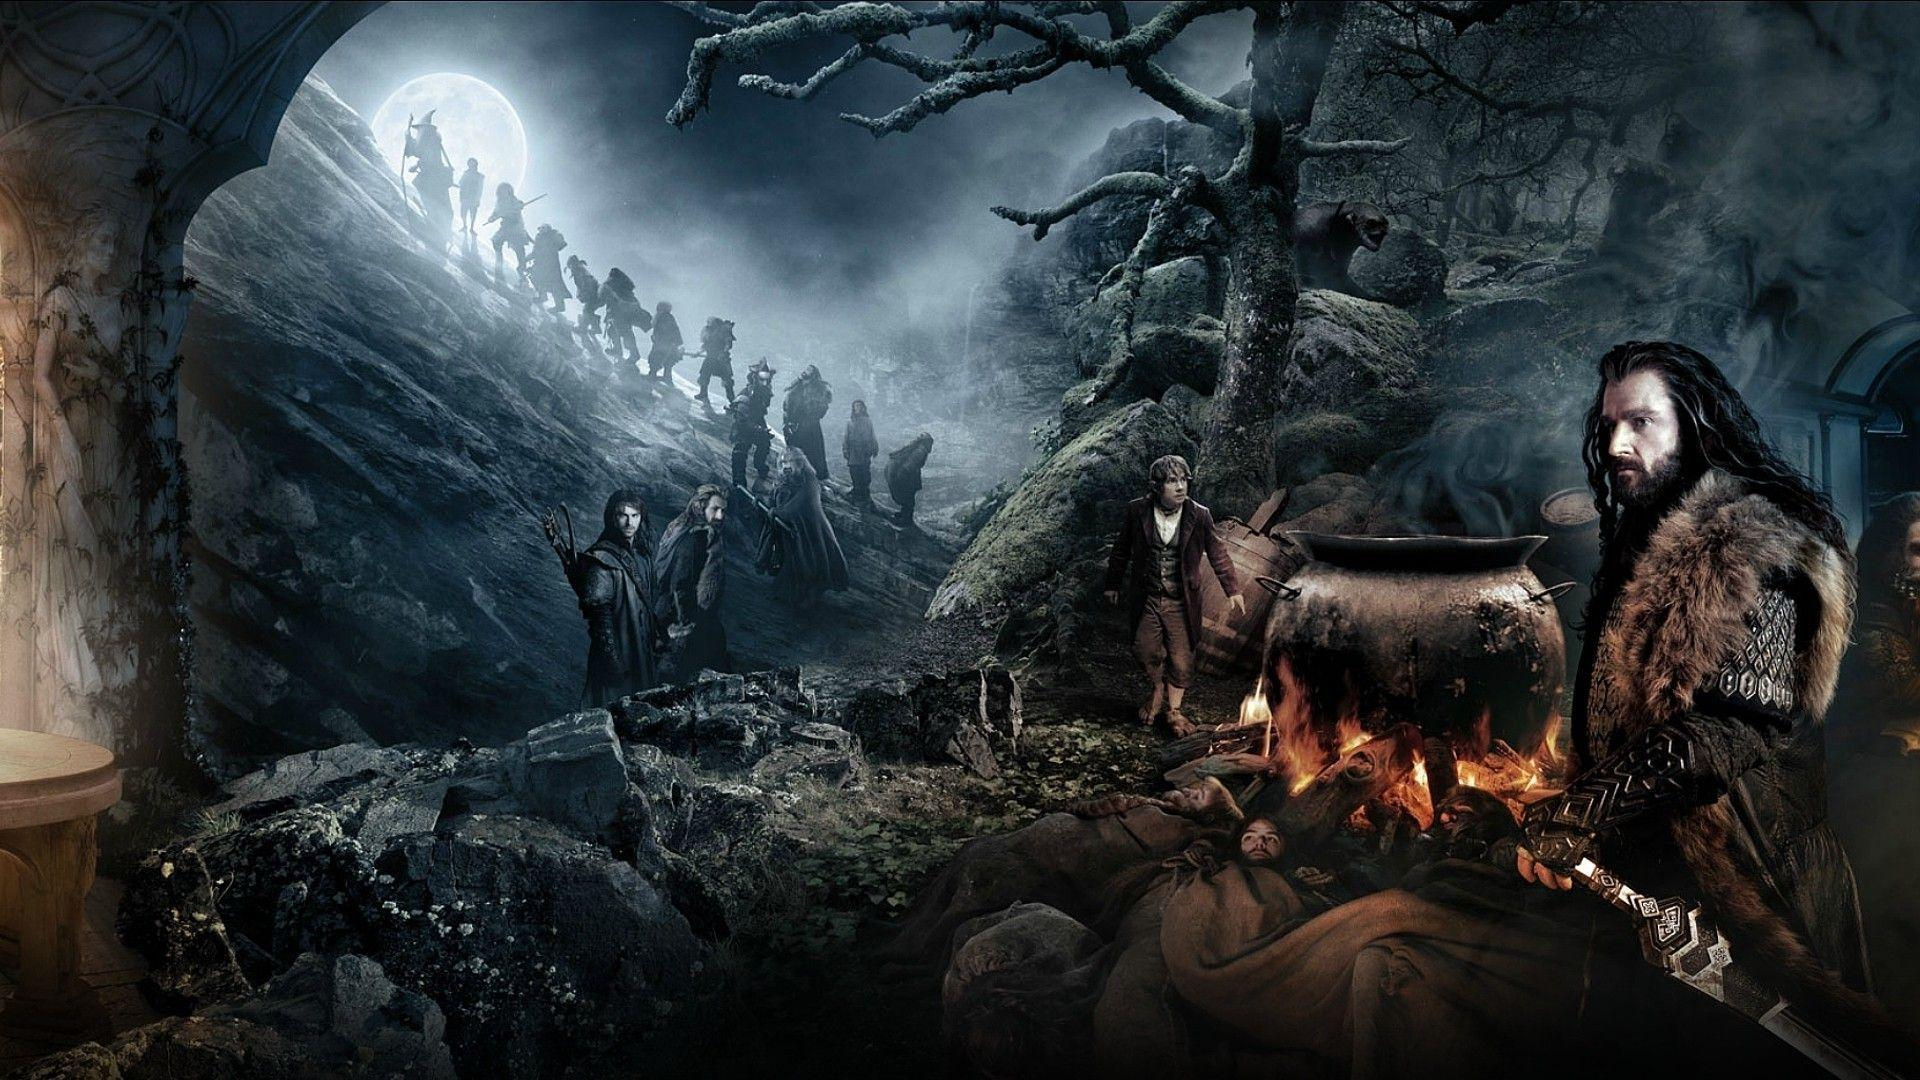 The Hobbit Wallpapers 1920x1080